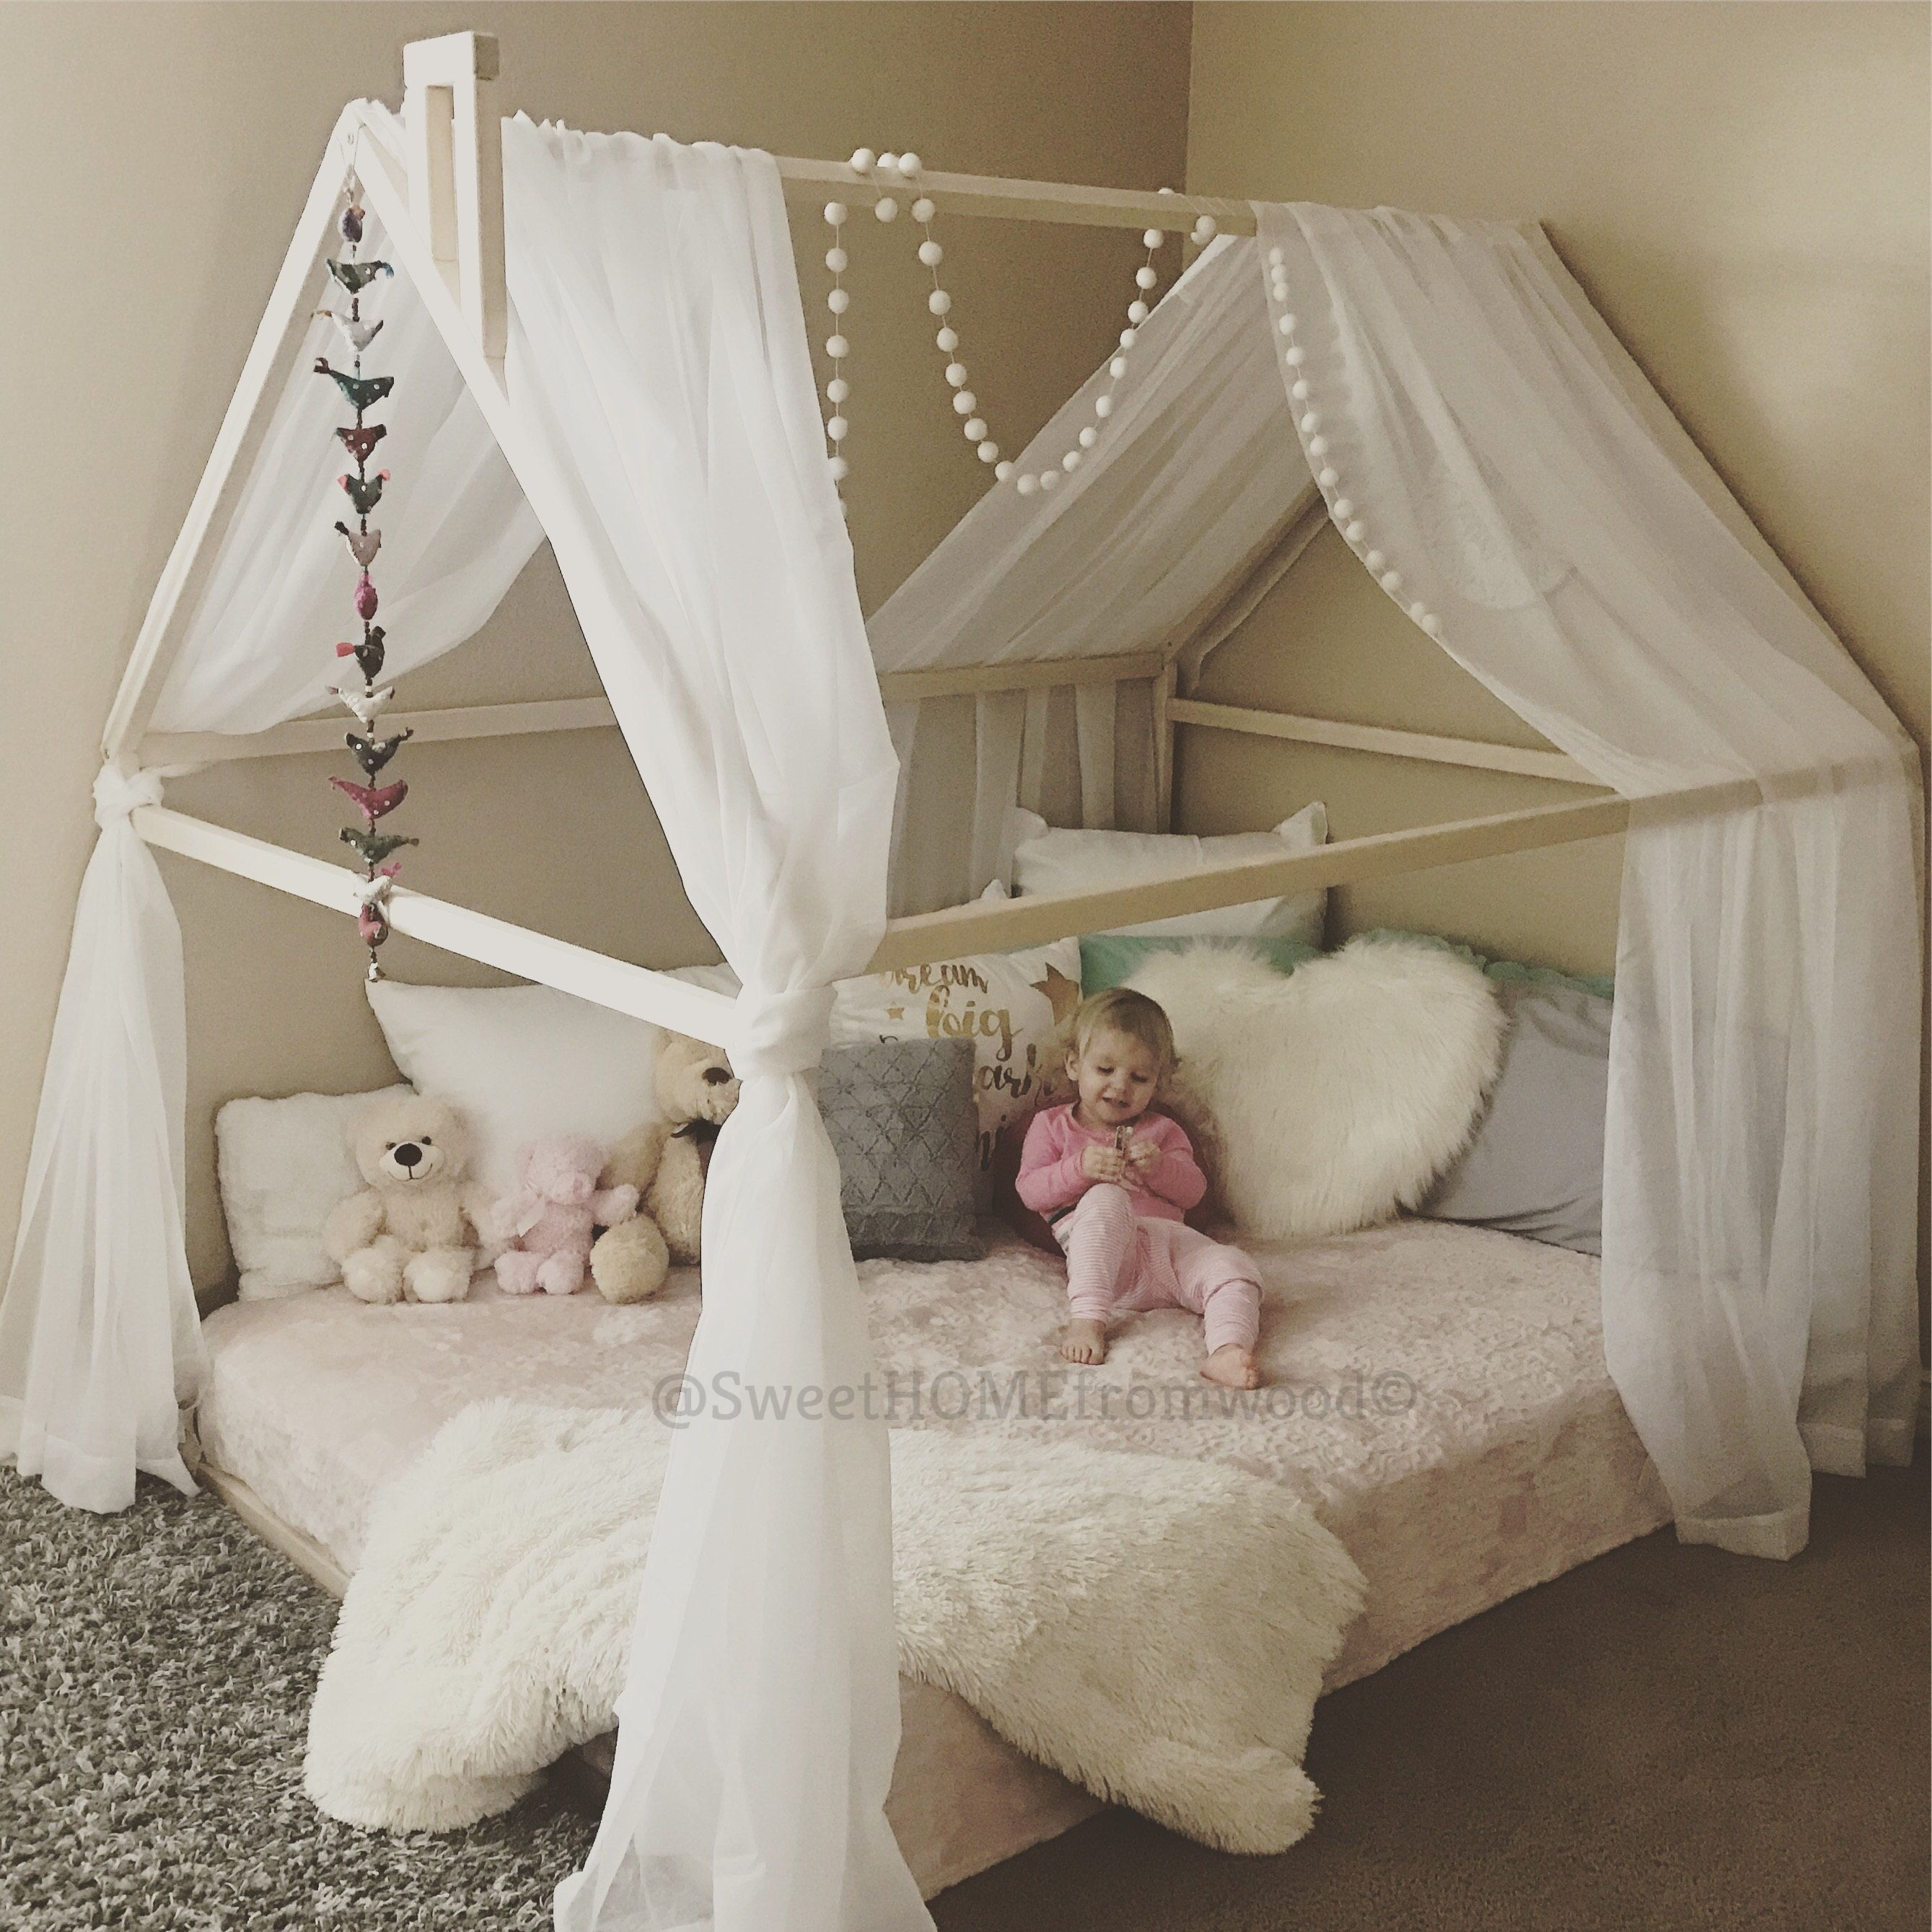 Toddler bed house bed tent bed children bed wooden house wood  sc 1 st  Pinterest & Toddler bed house bed tent bed children bed wooden house wood ...